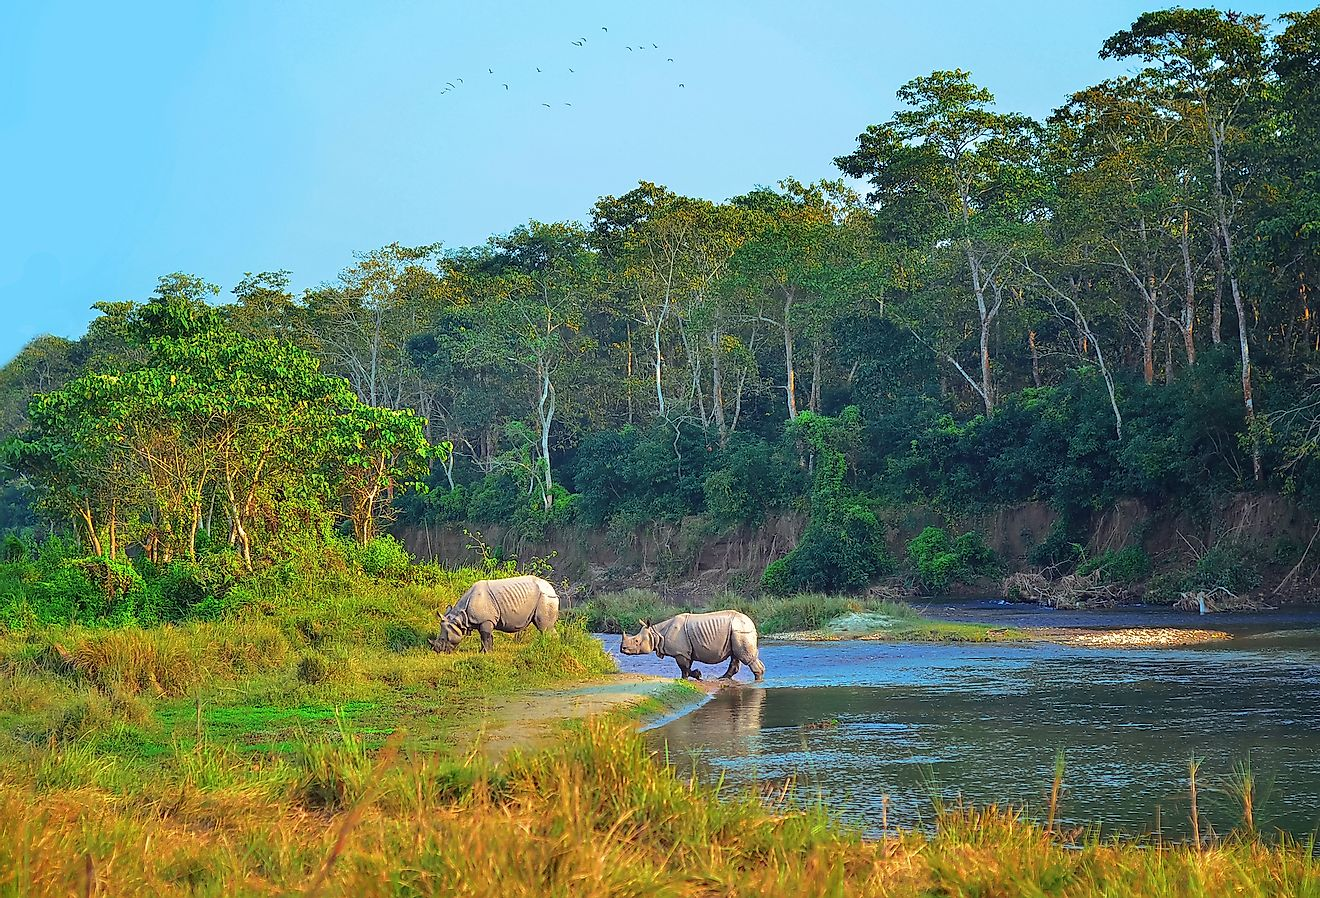 Indian rhinos in Chitwan National Park in Nepal. Image credit: Natalia Maroz/Shutterstock.com